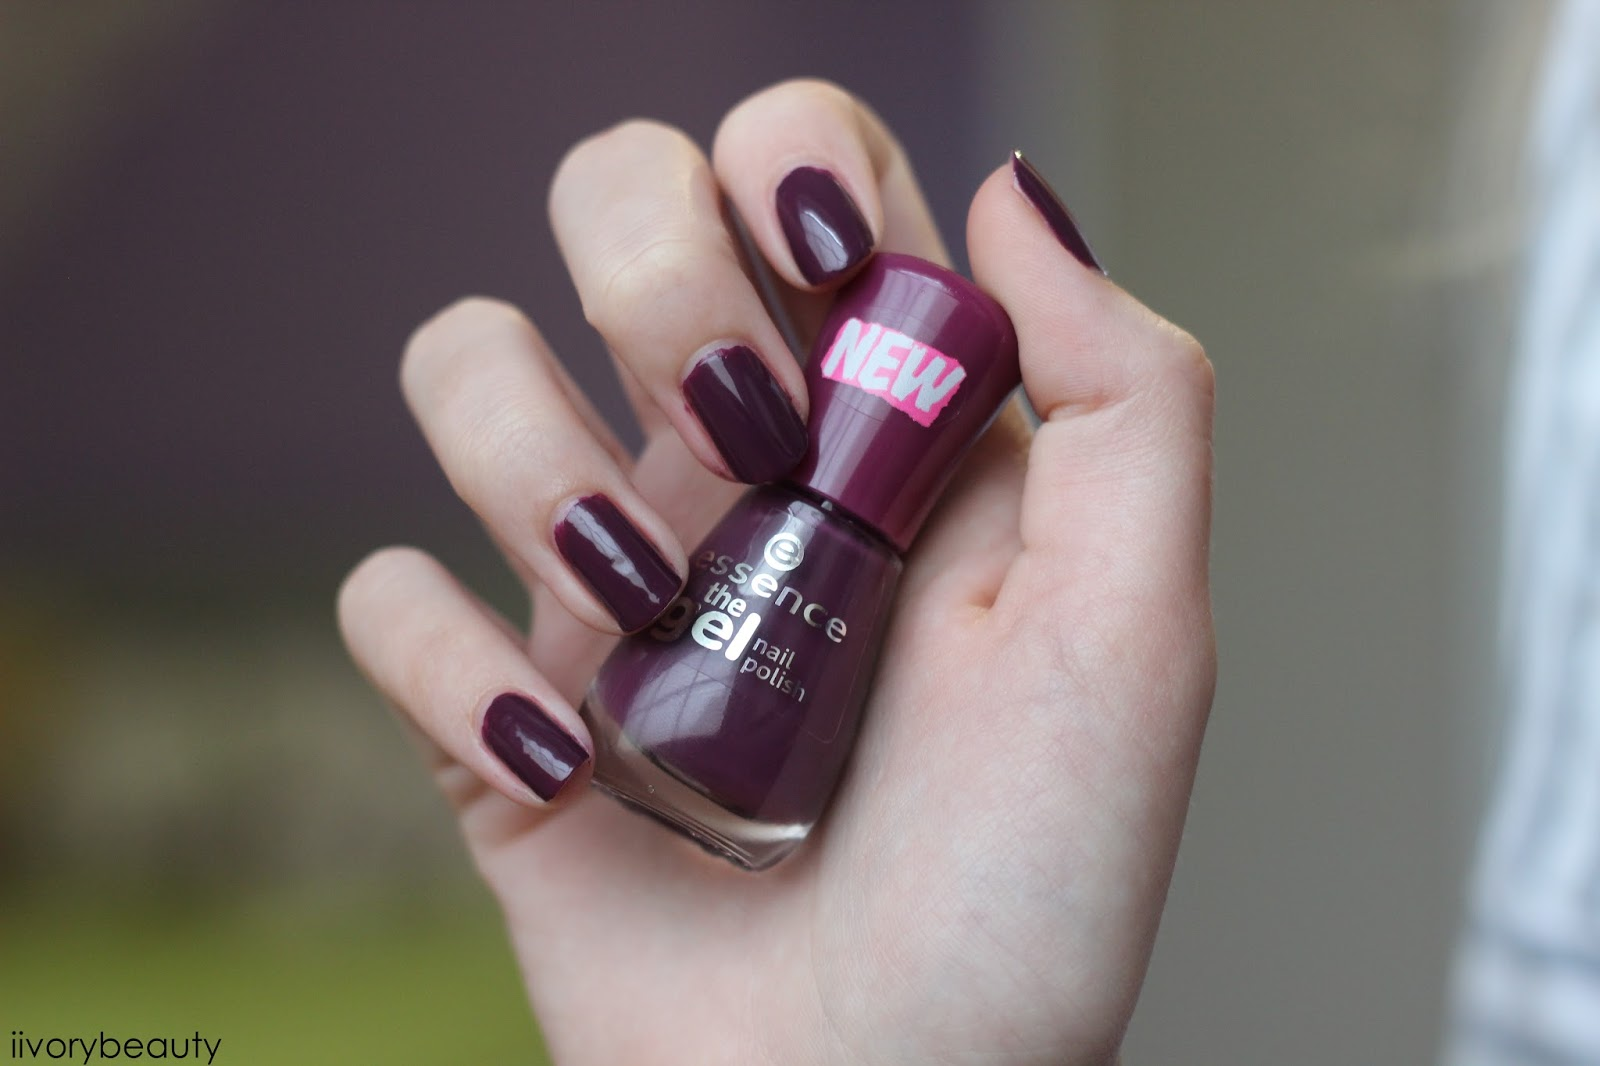 essence Update Herbst/Winter 2015: The Gel Nail Polish + Effect Nail ...